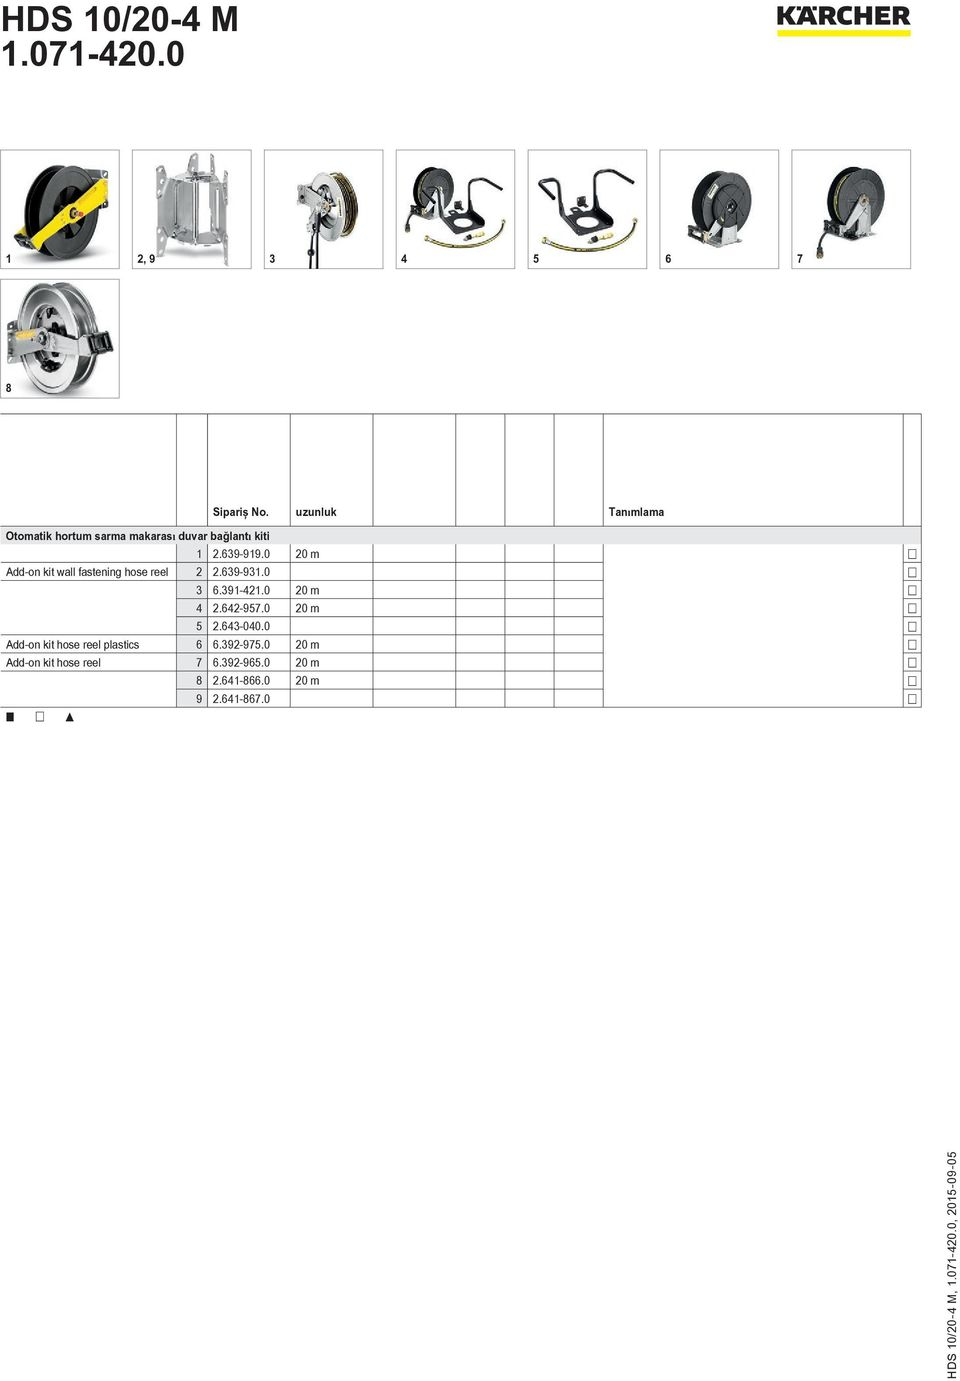 0 20 m Add-on kit wall fastening hose reel 2 2.639-931.0 3 6.391-421.0 20 m 4 2.